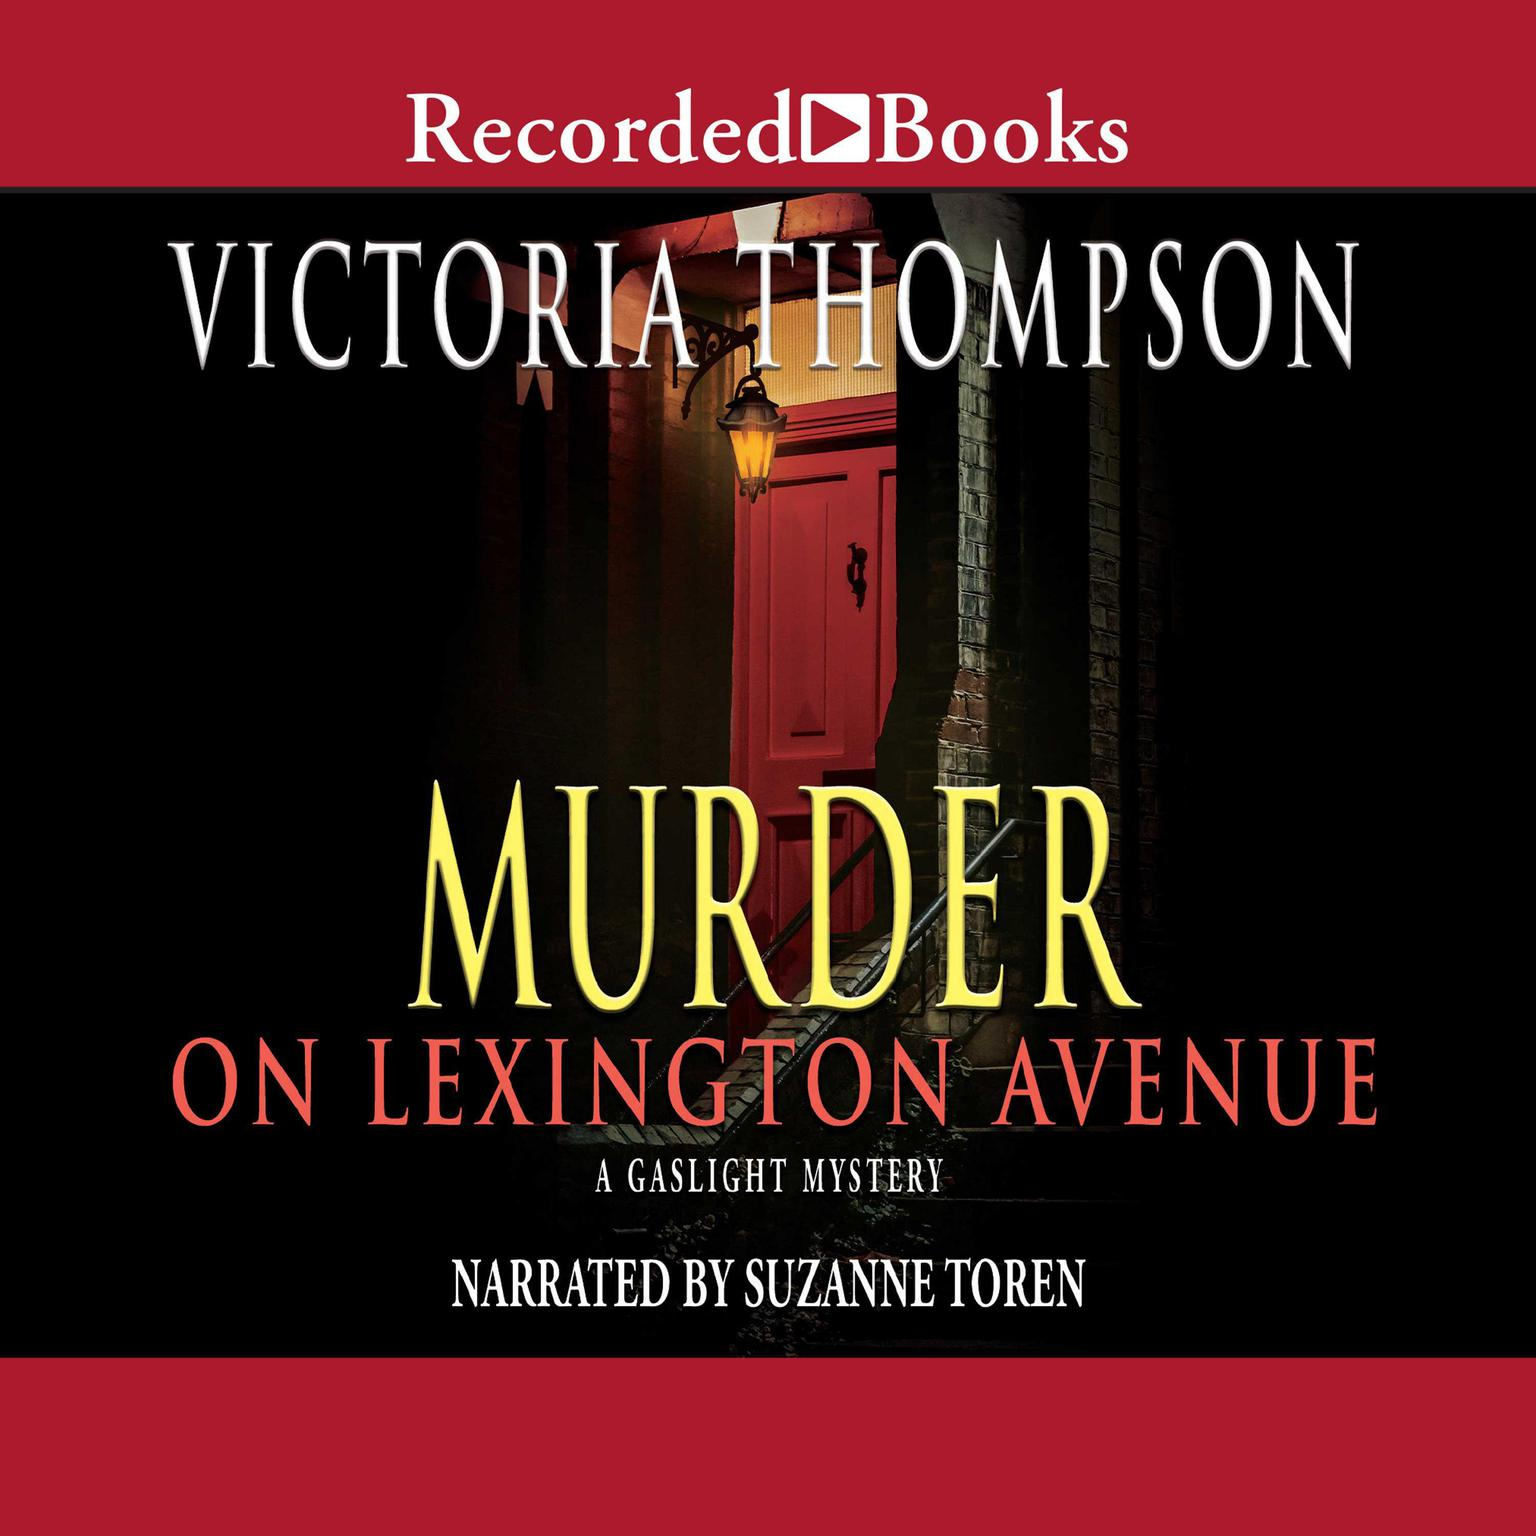 Printable Murder on Lexington Avenue Audiobook Cover Art